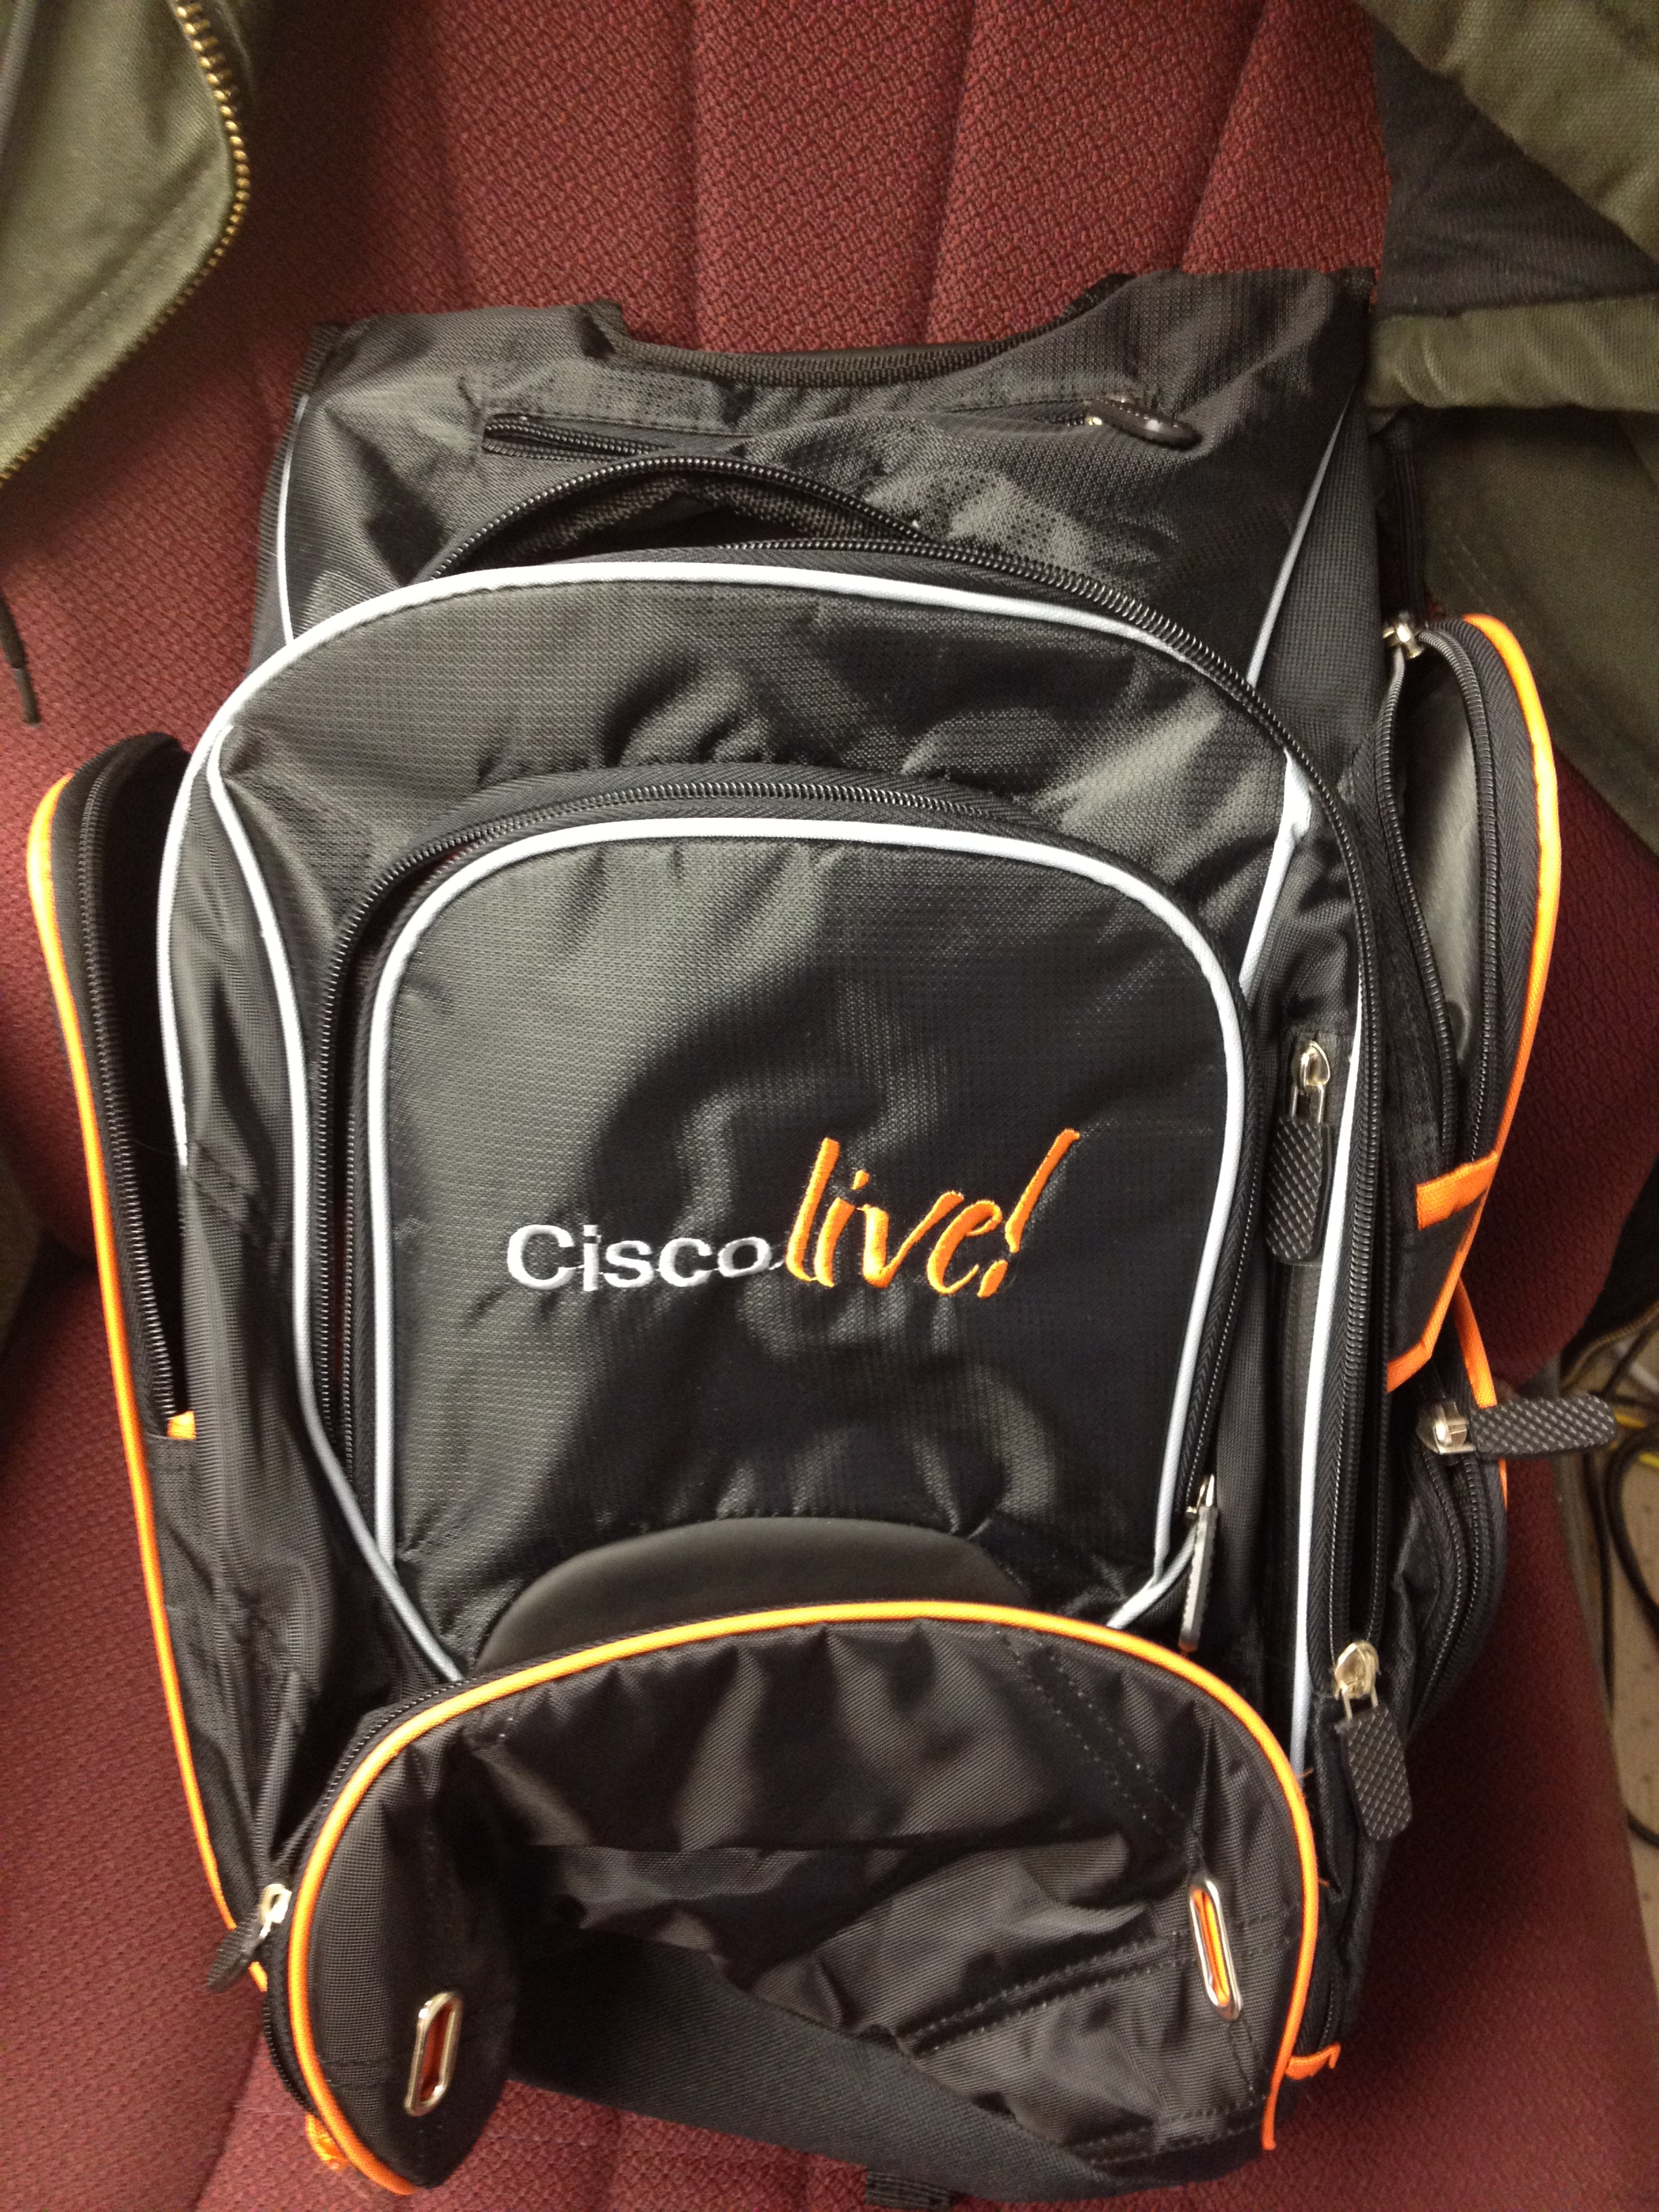 467cc789c Las Vegas still had more to give Cisco Live, and so we found ourselves back  again in 2011. This conference bag was the first in a while to have the  bright ...